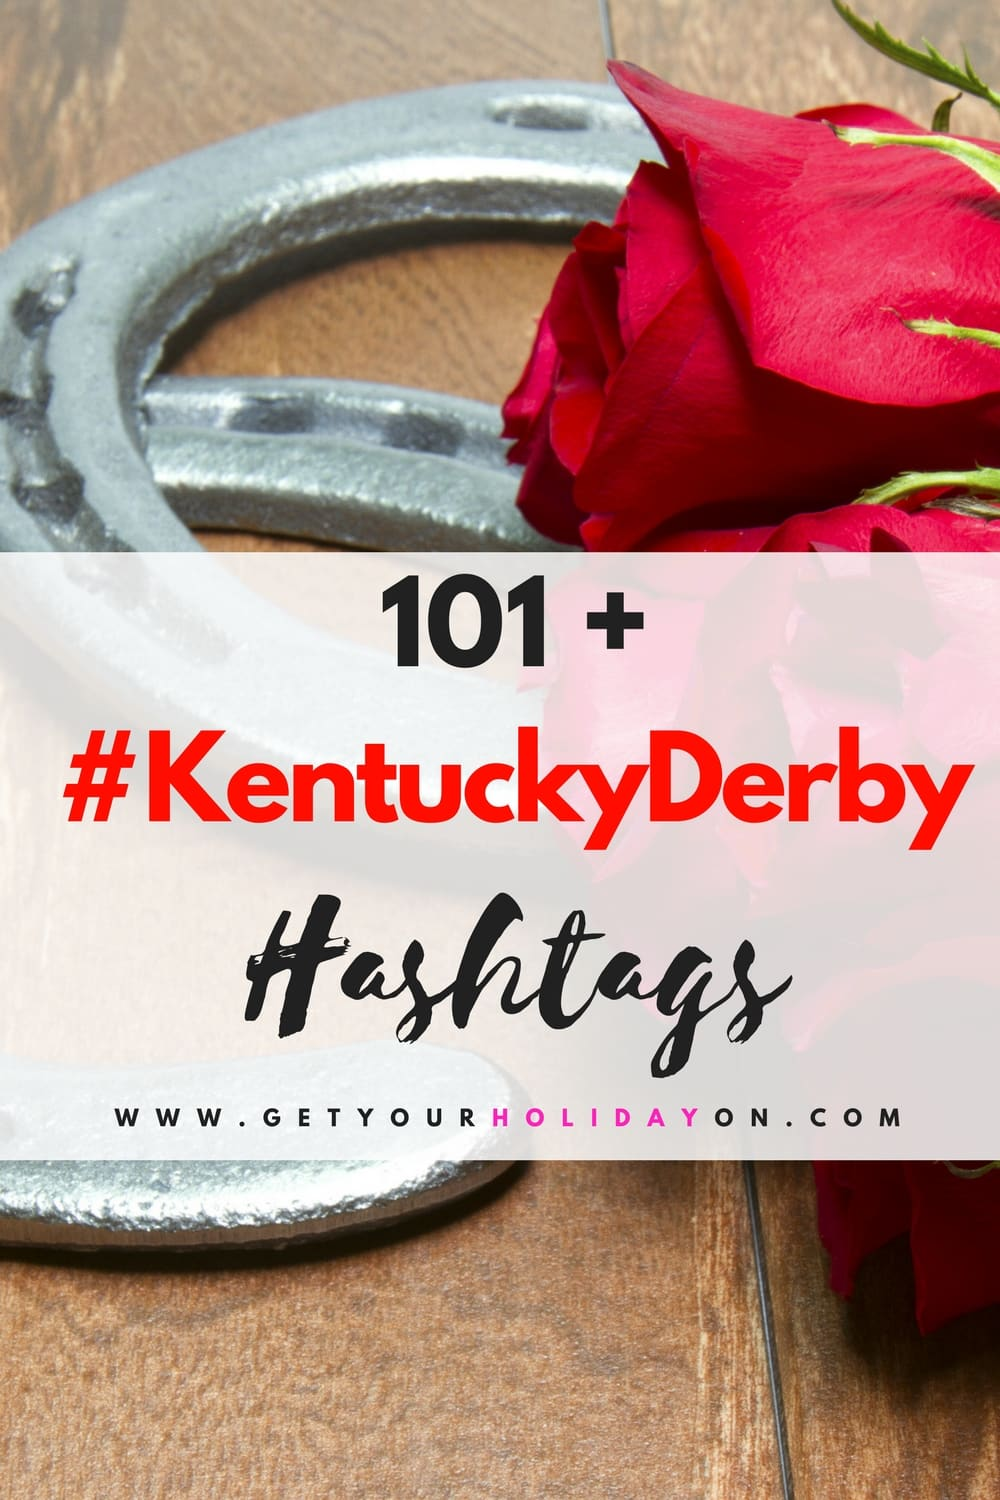 Hashtags for christmas giveaways in kentucky